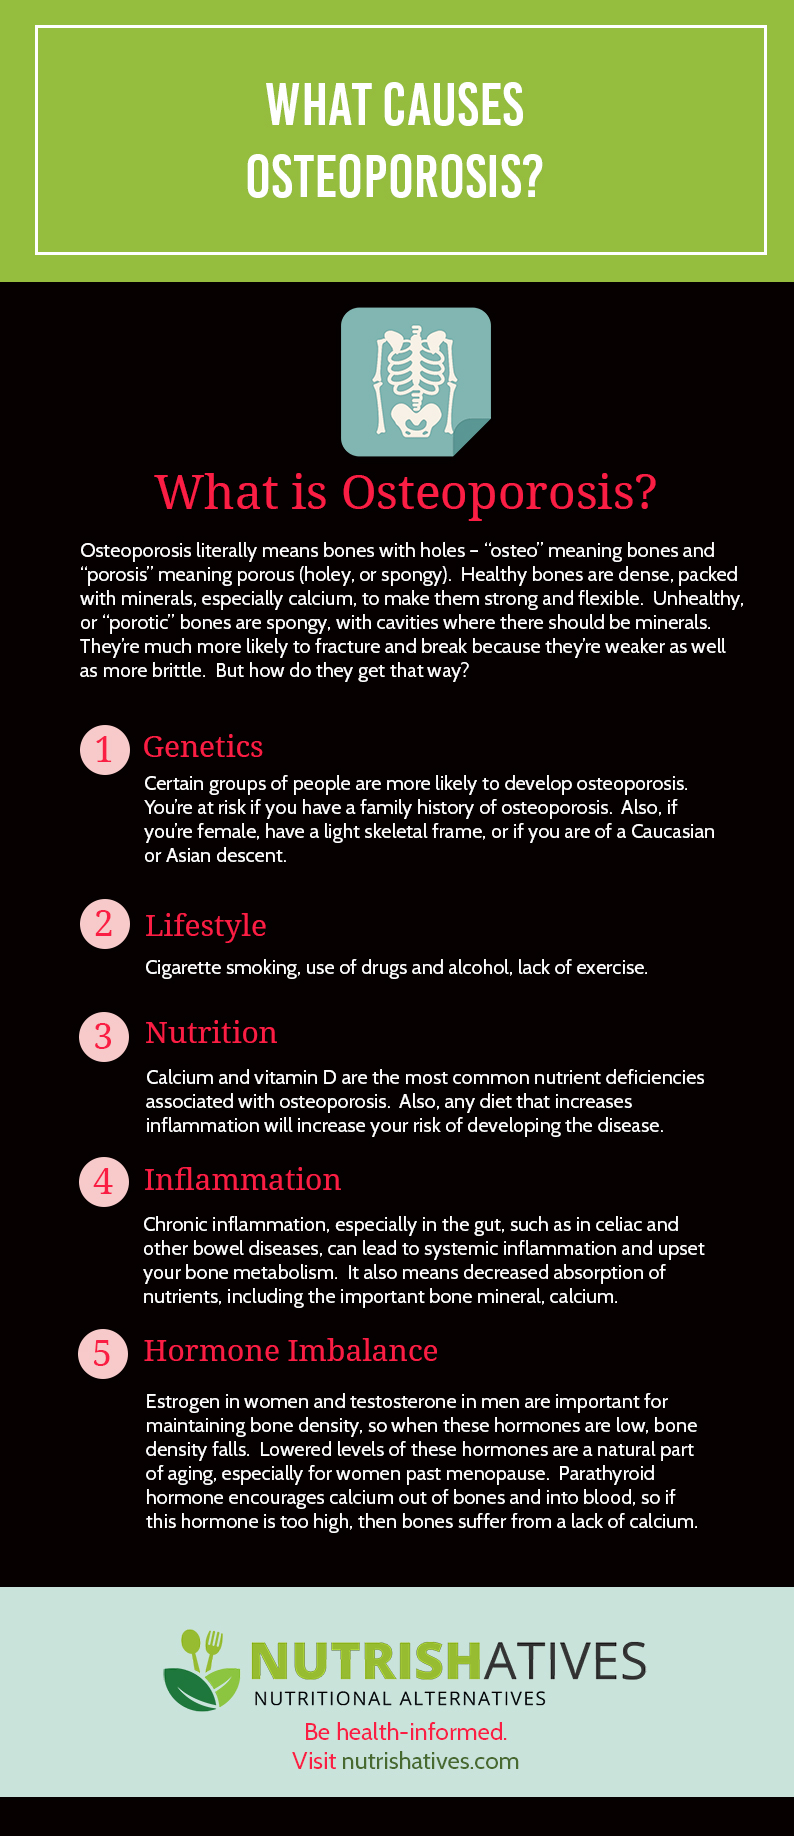 What Causes Osteoporosis